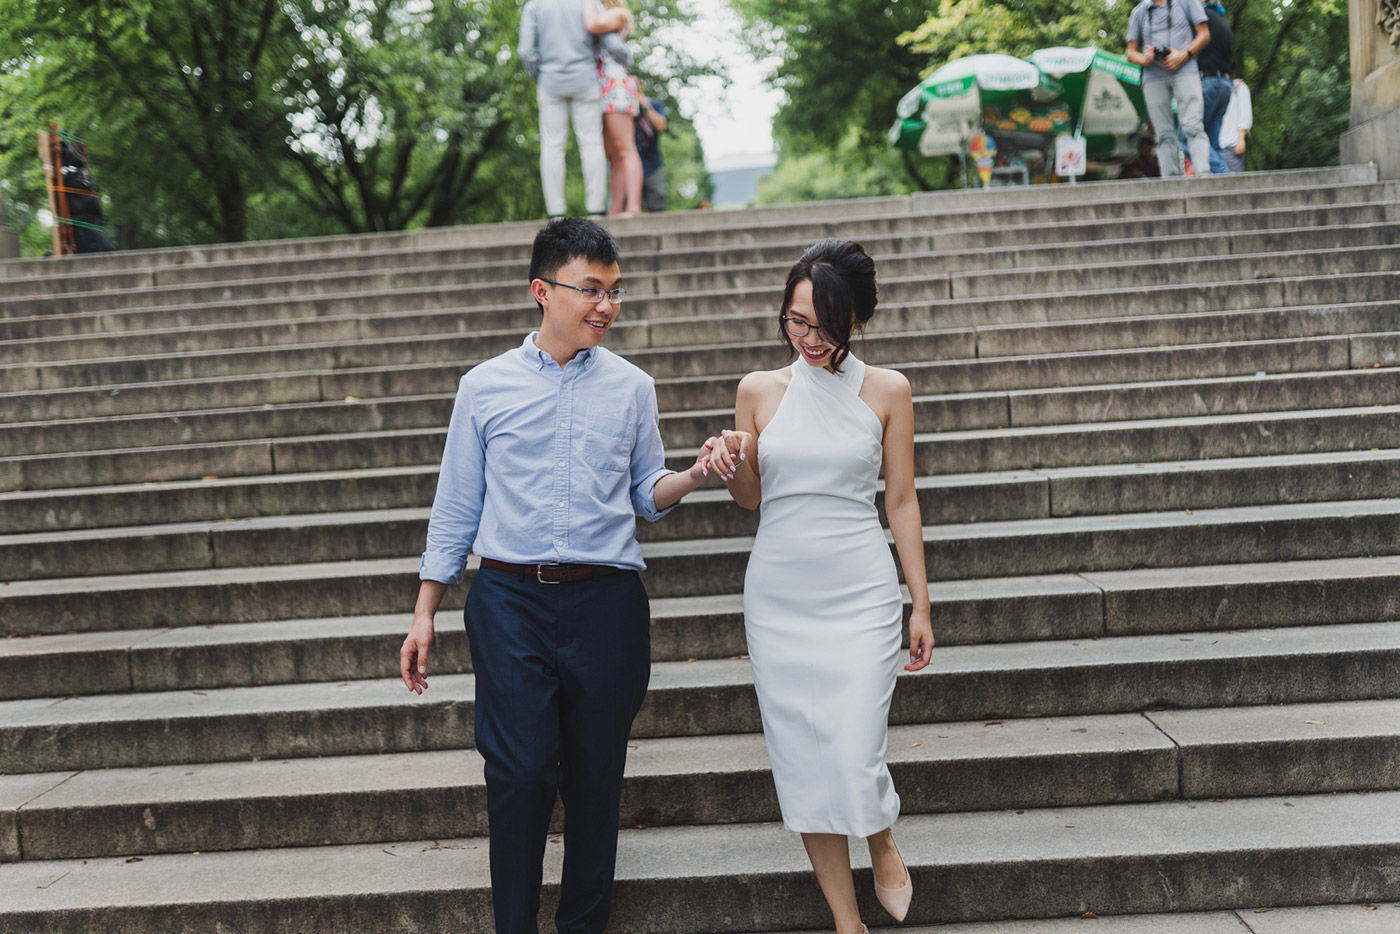 Walking down the steps of Bethesda Terrace in Central Park, right after their proposal.